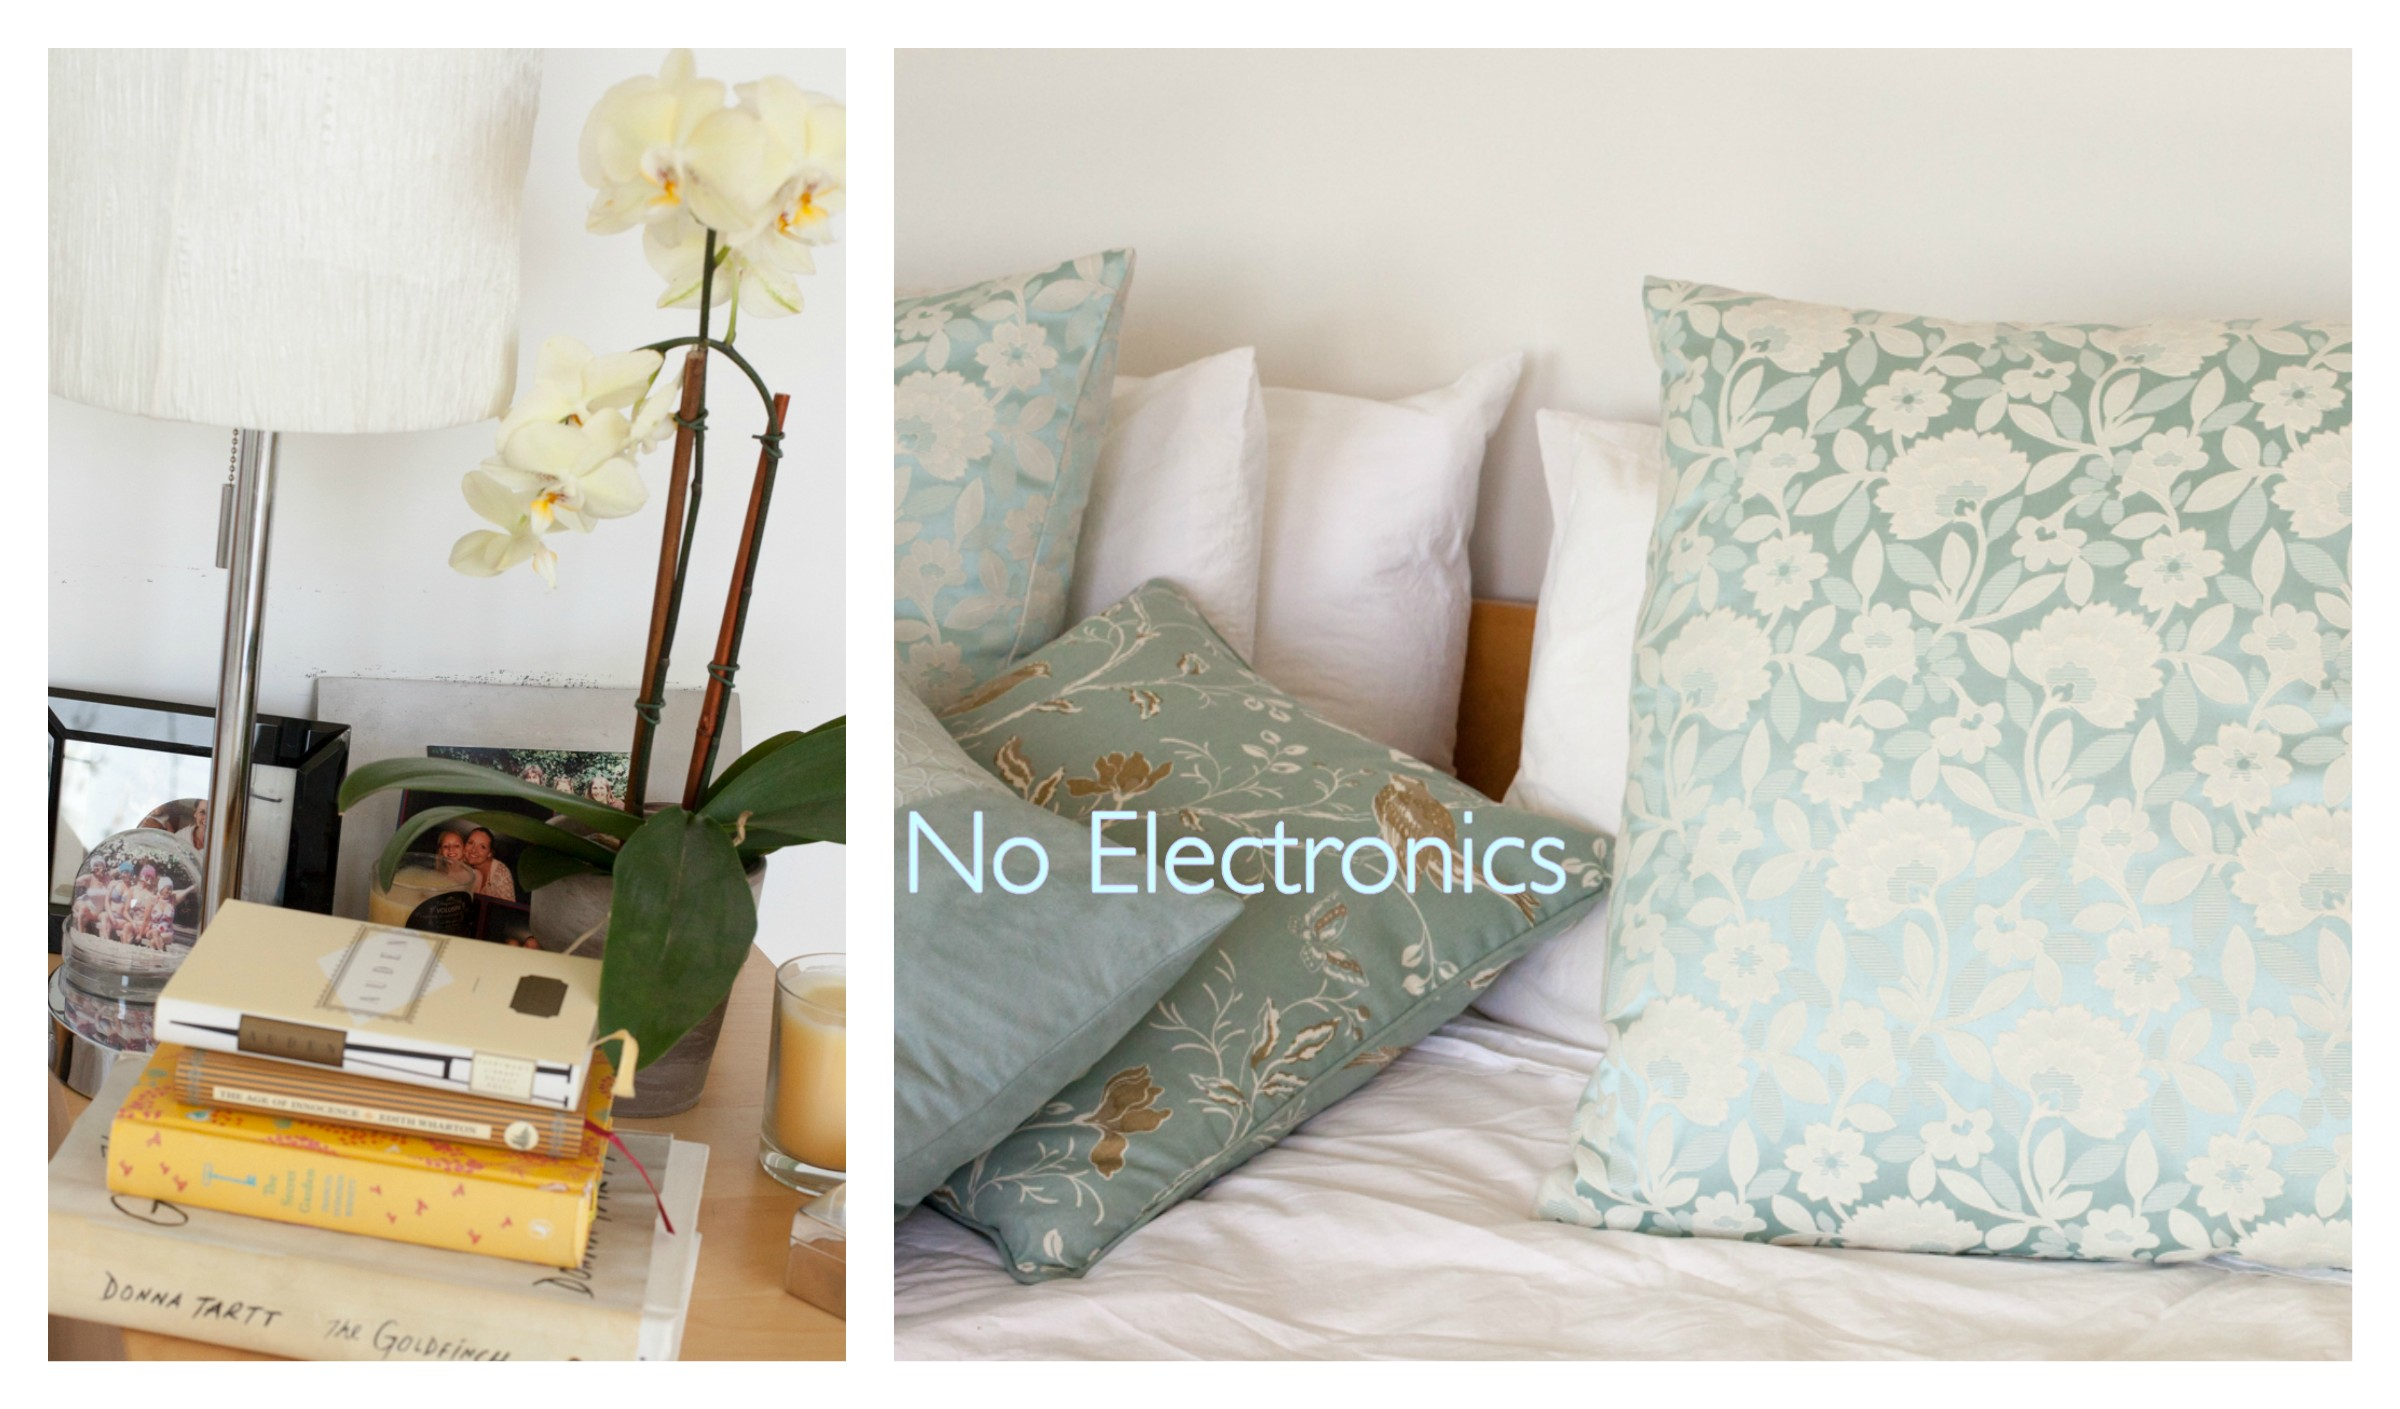 no electronics in the bedroom